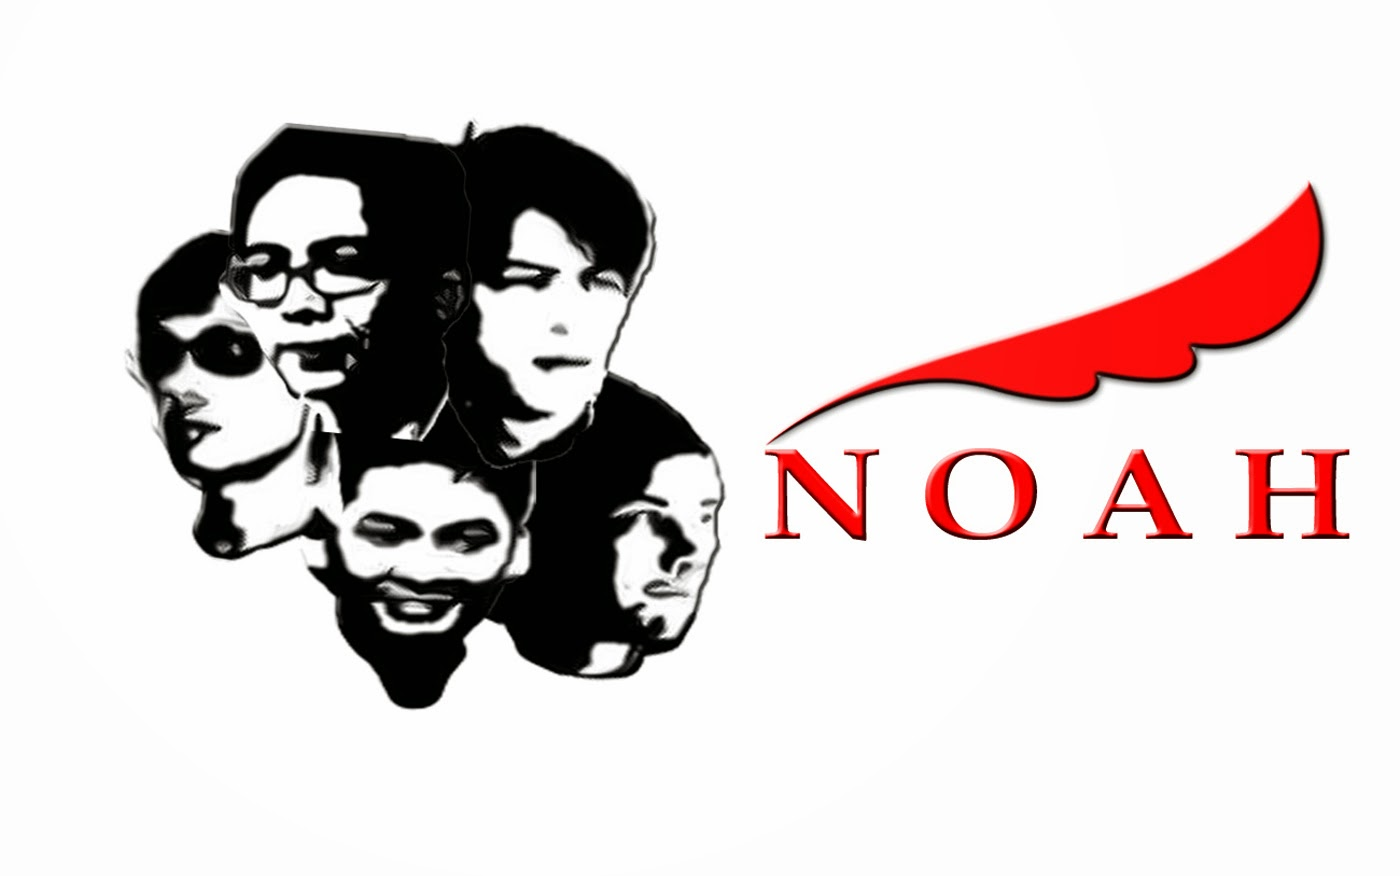 Noah-Band-HD-Wallpapers-Widescreen-Background-Images.jpg